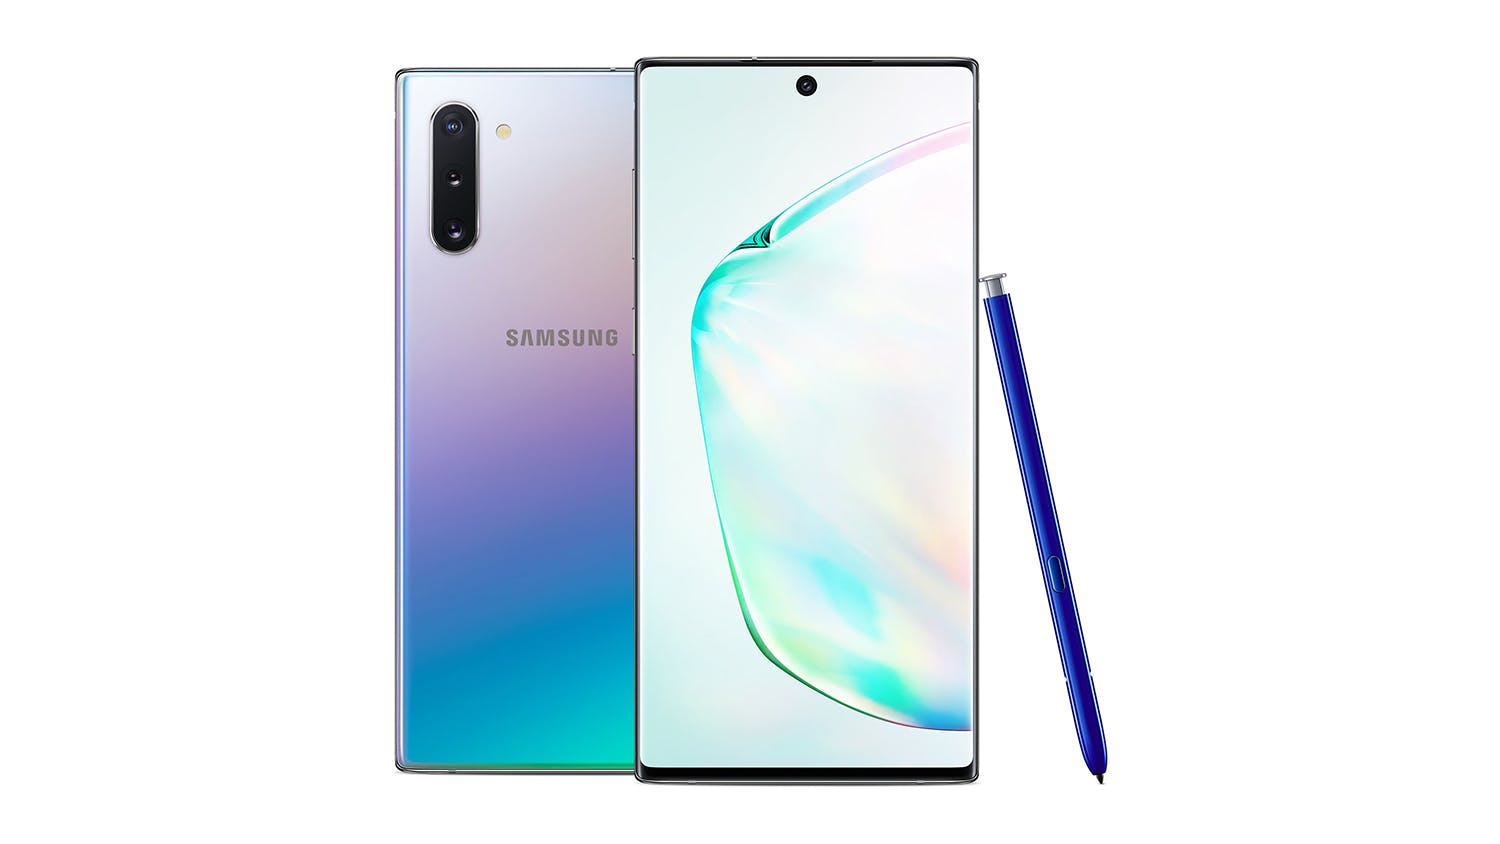 2degrees Samsung Galaxy Note10+ Aura Glow - 256GB